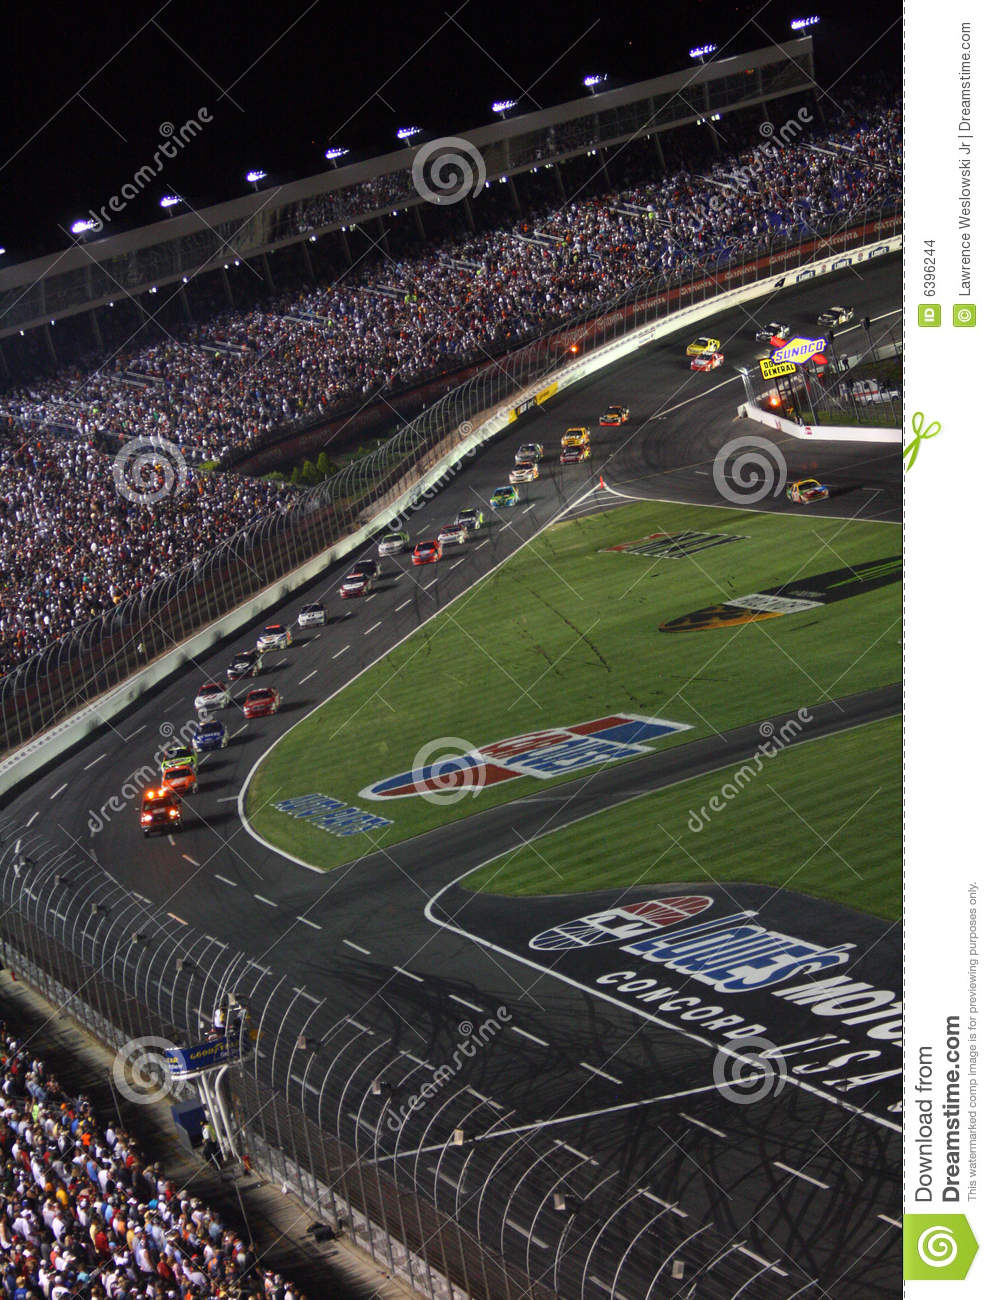 NASCAR - under caution at Lowes 2